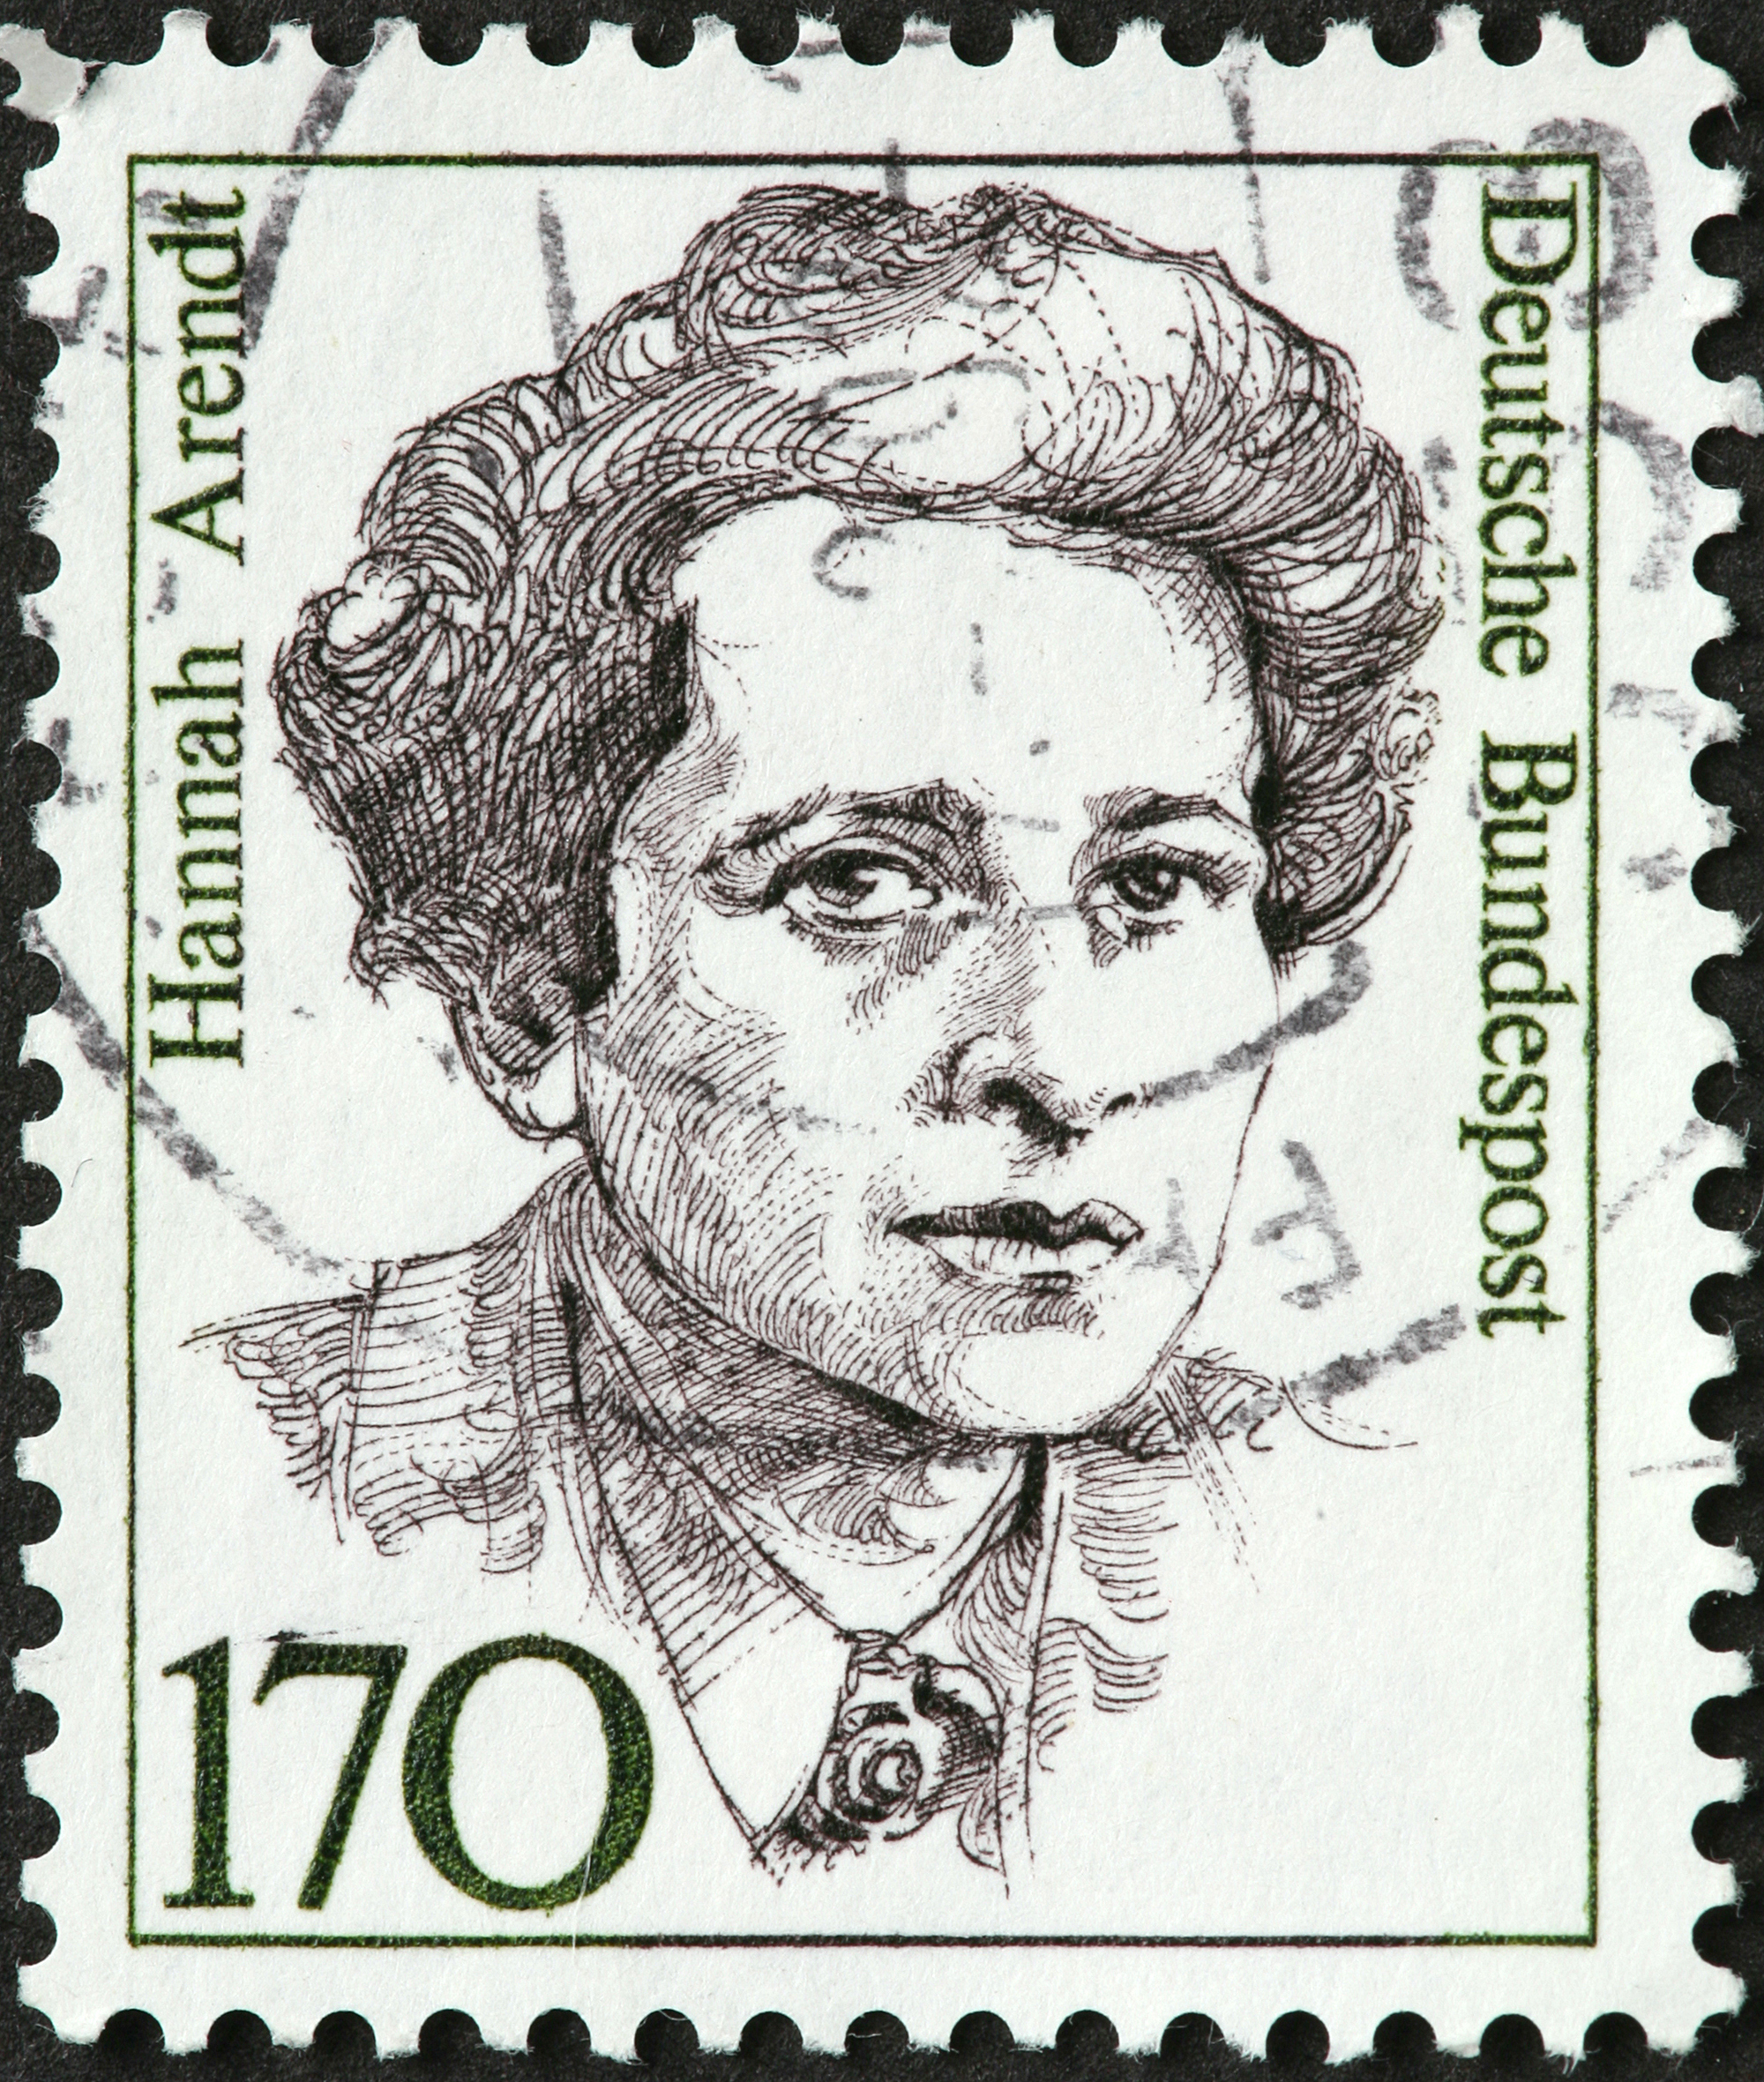 Ardent on a stamp